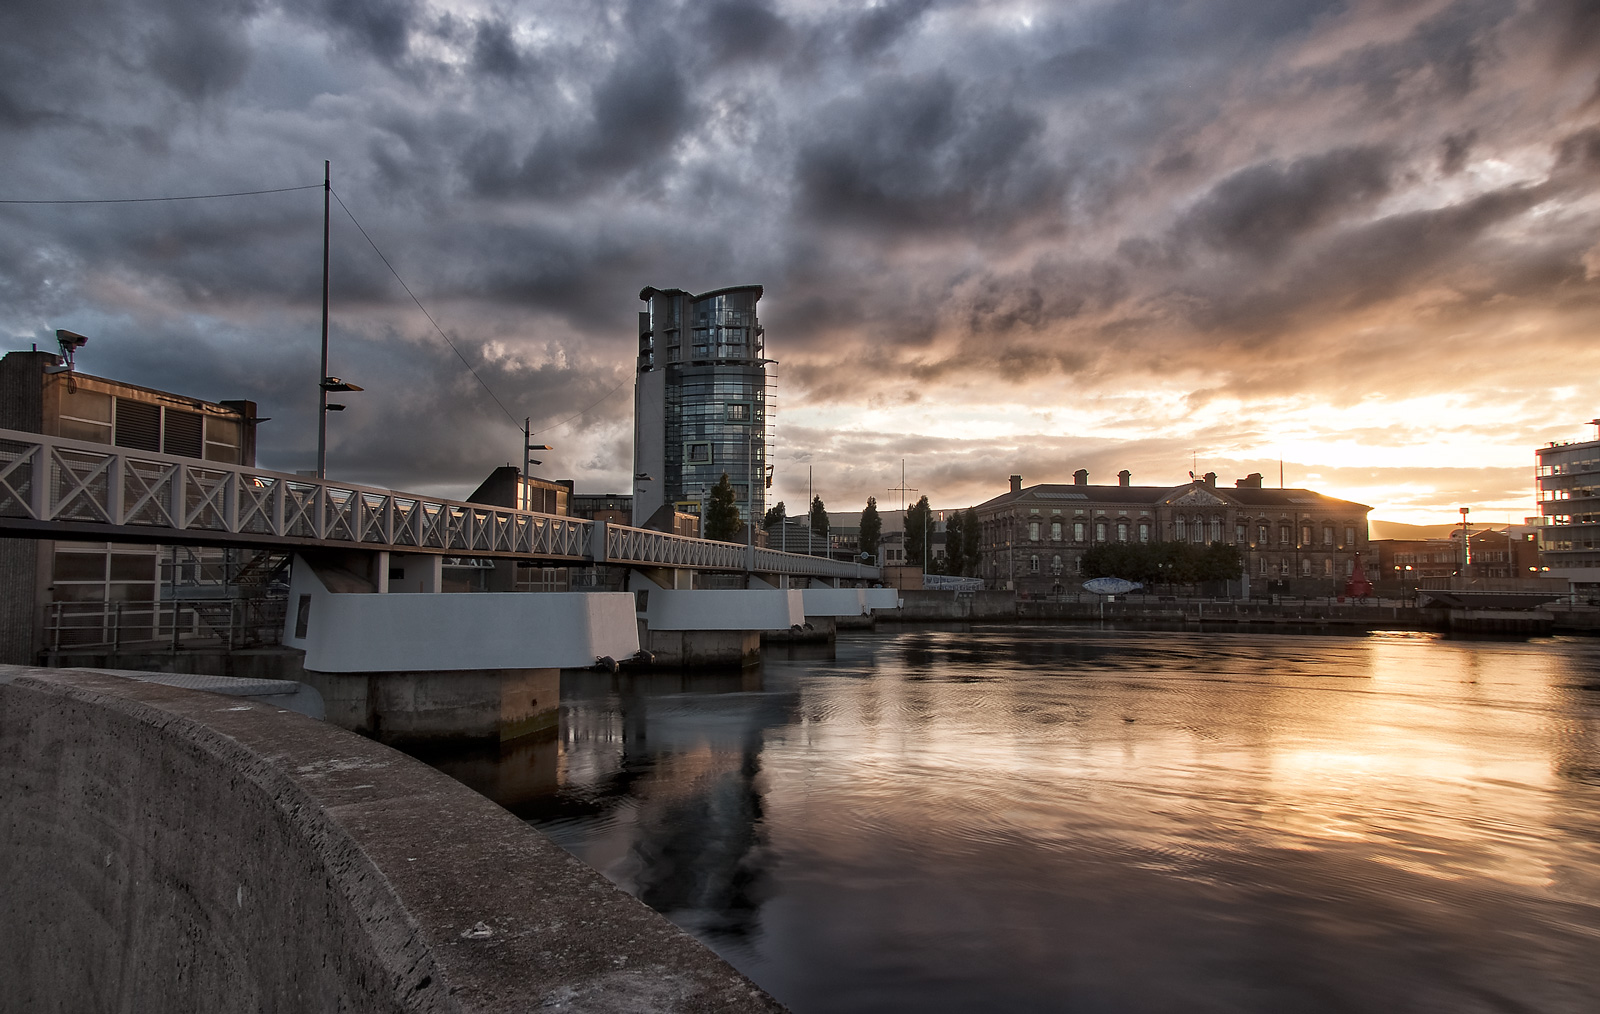 Lagan Weir, Belfast by Geoff McGrath